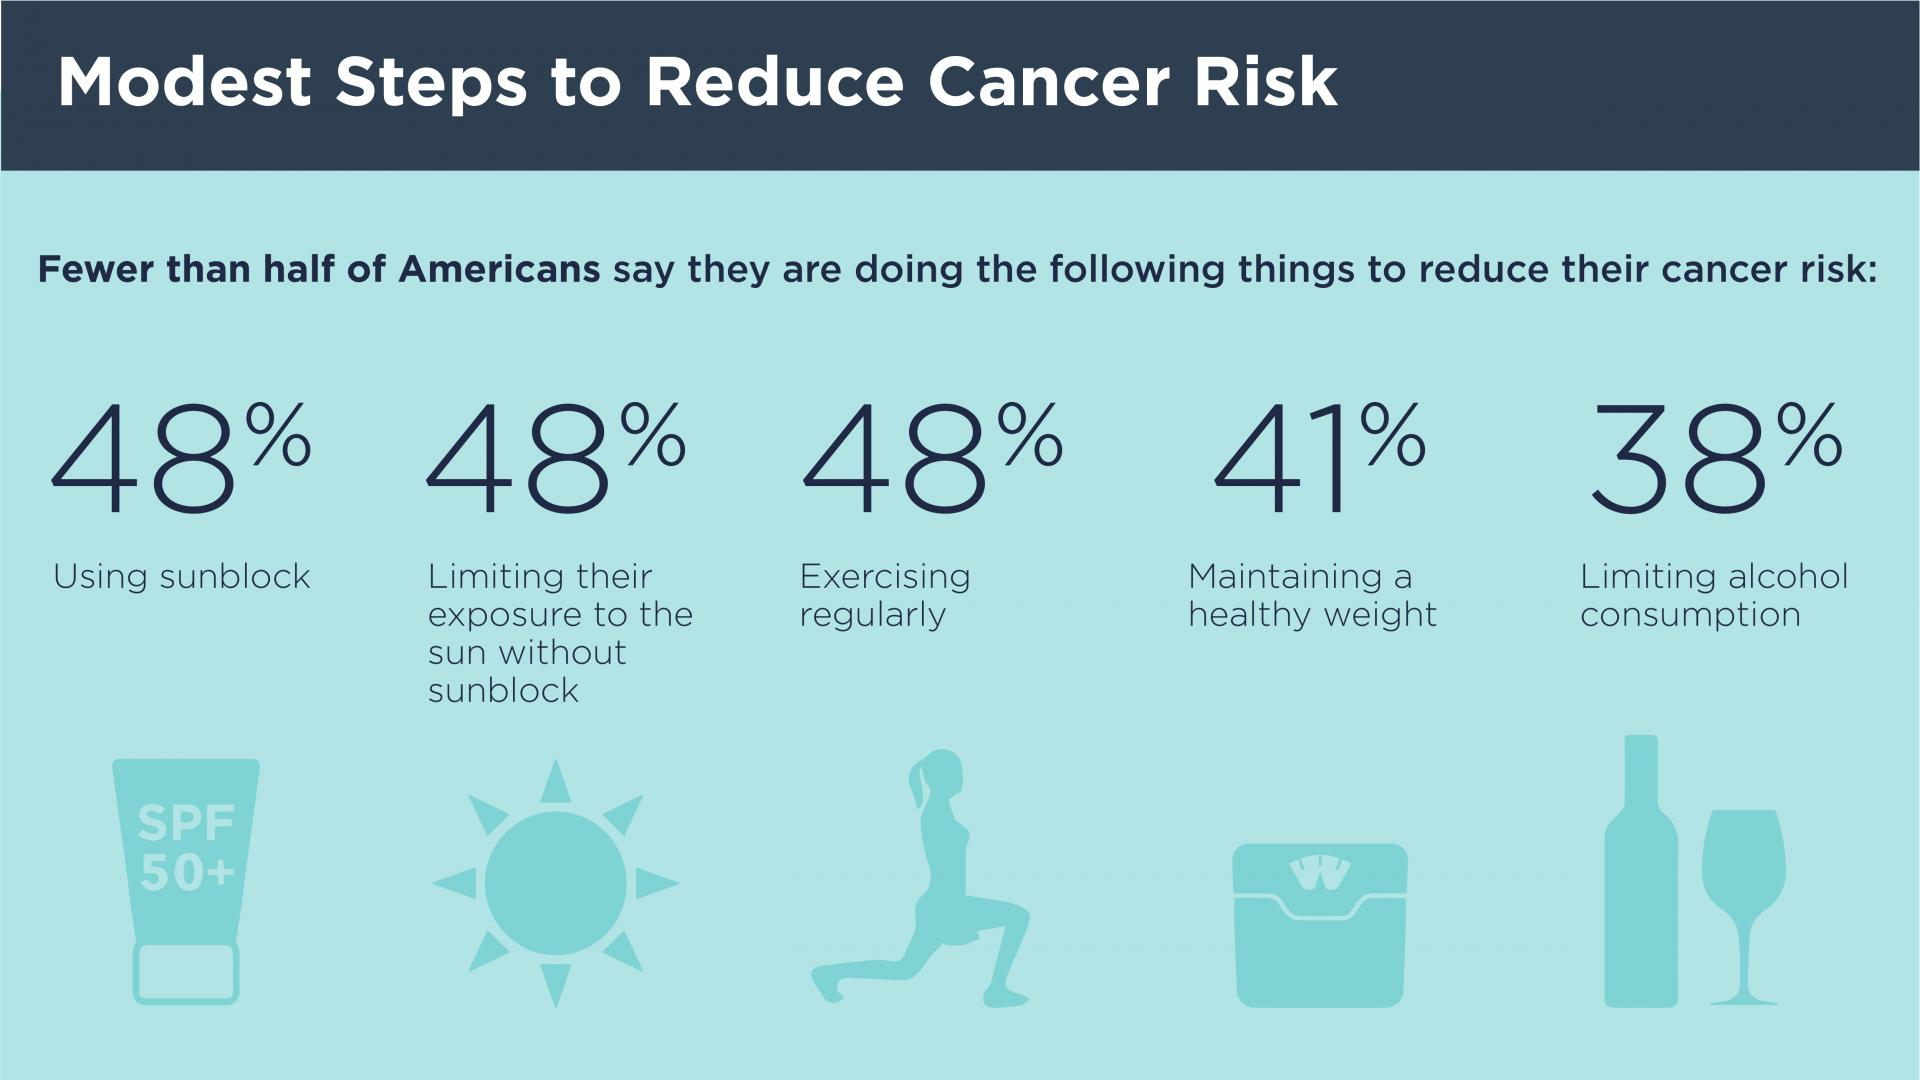 Modest Steps to Reduce Cancer Risk infogram